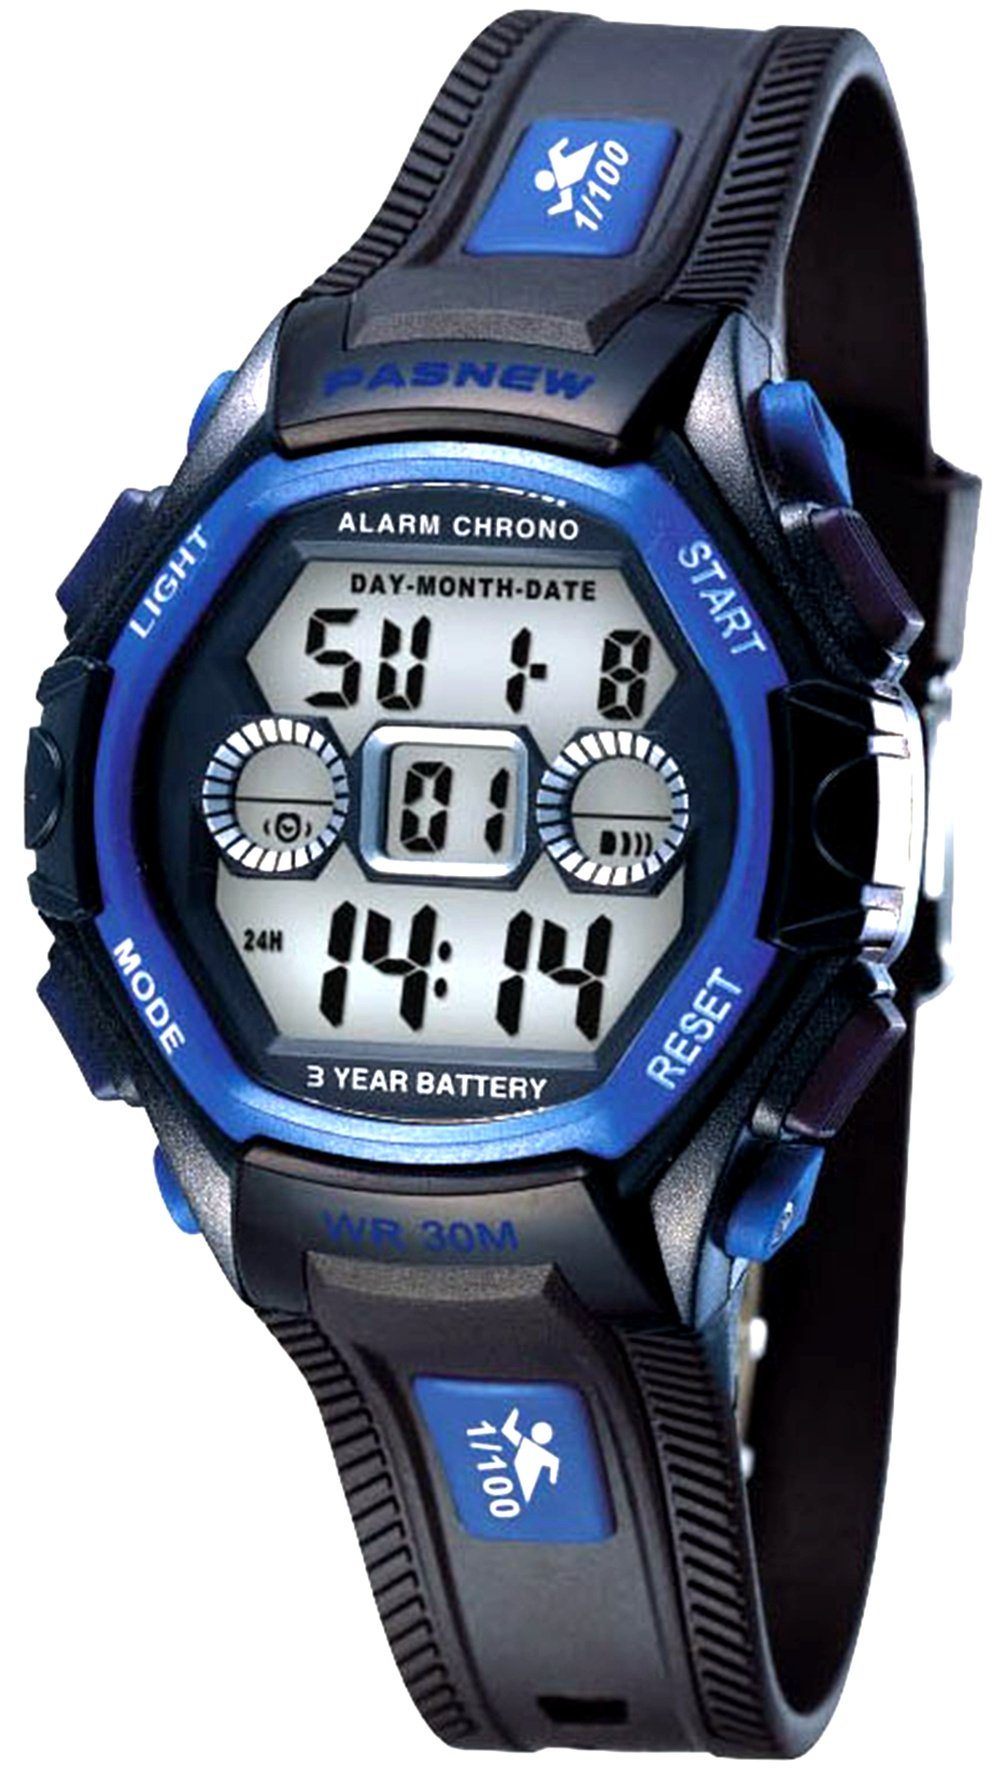 Waterproof Boys/Girls/Kids/Childrens Digital Sports Watches for 5-12 Years Old (Black Blue)